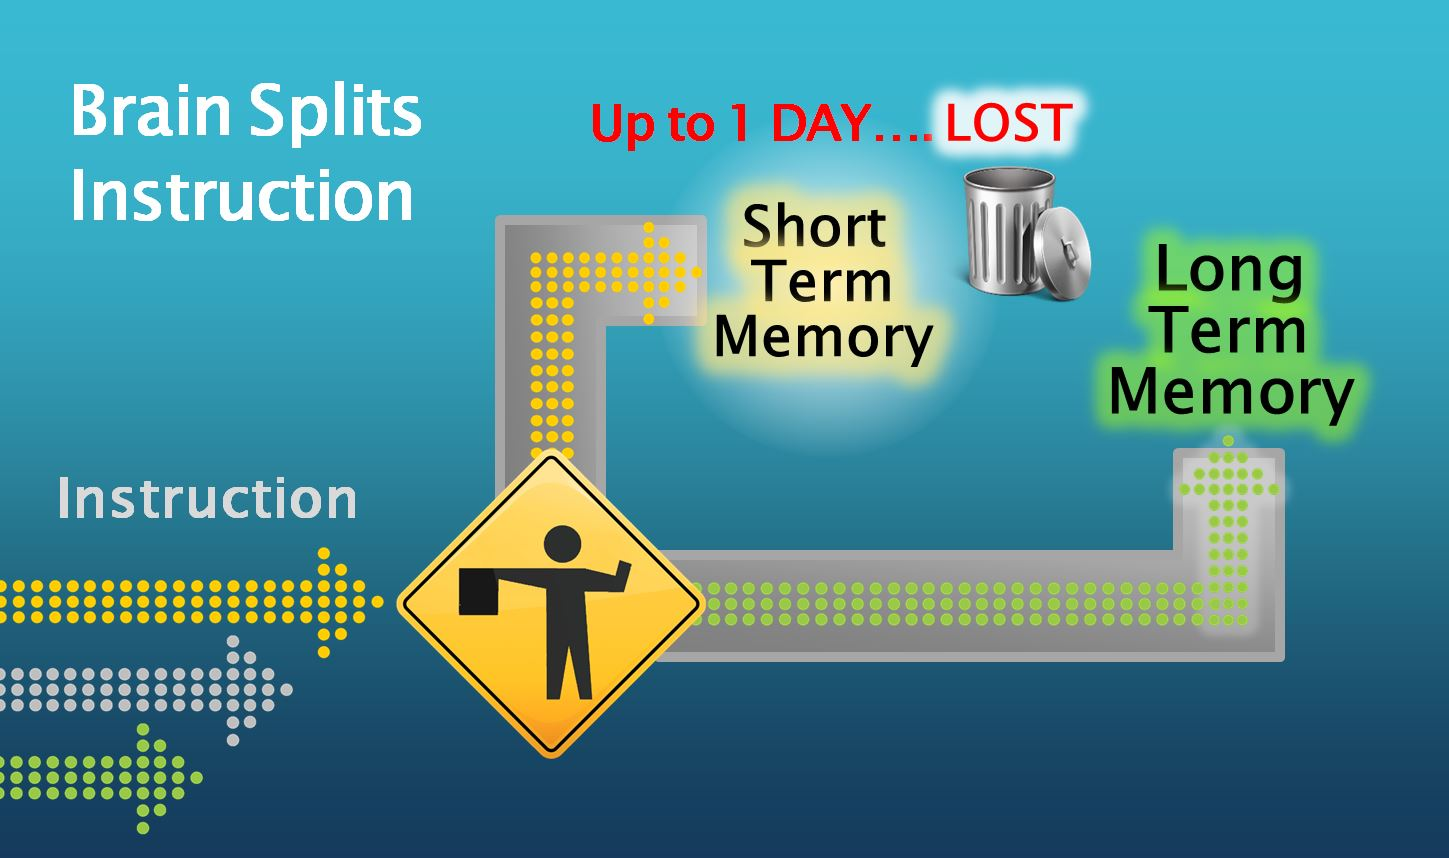 short and long term memory The biggest categories of memory are short-term memory (or working memory) and long-term memory, based on the amount of time the memory is stored both can weaken due to age, or a variety of other reasons and clinical conditions that affect memory.